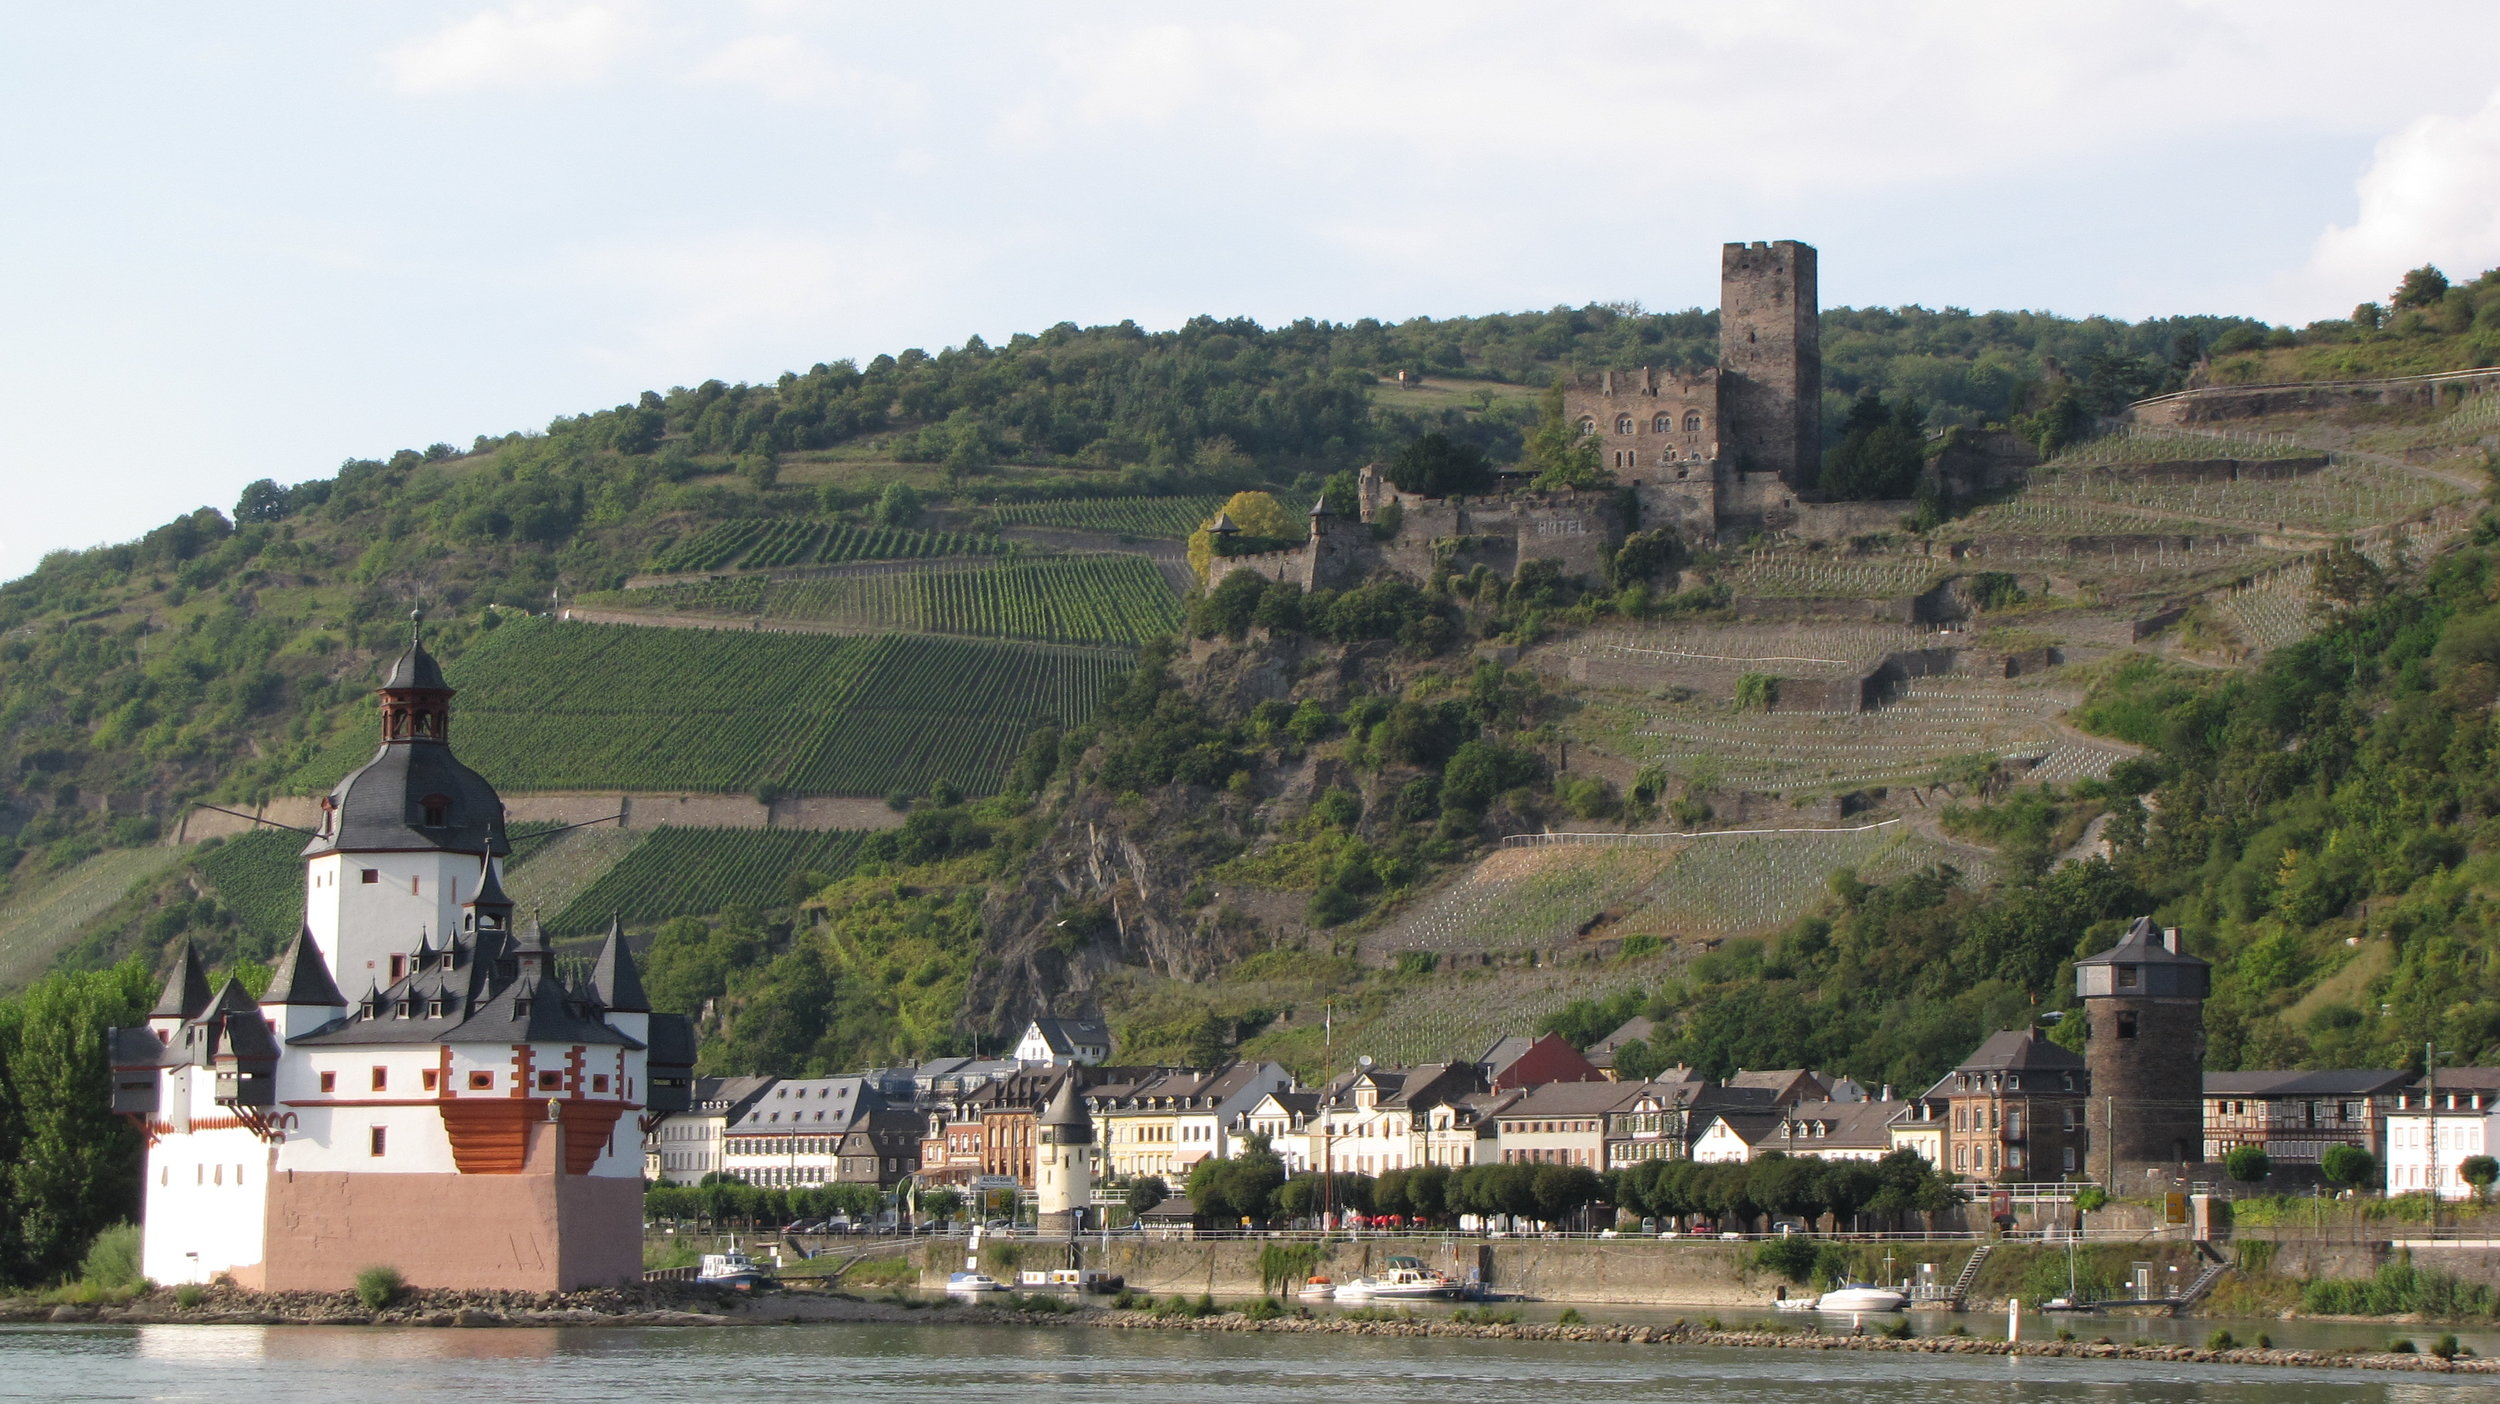 Pfalzgrafenstein Toll Castle on the Rhine River Gorge